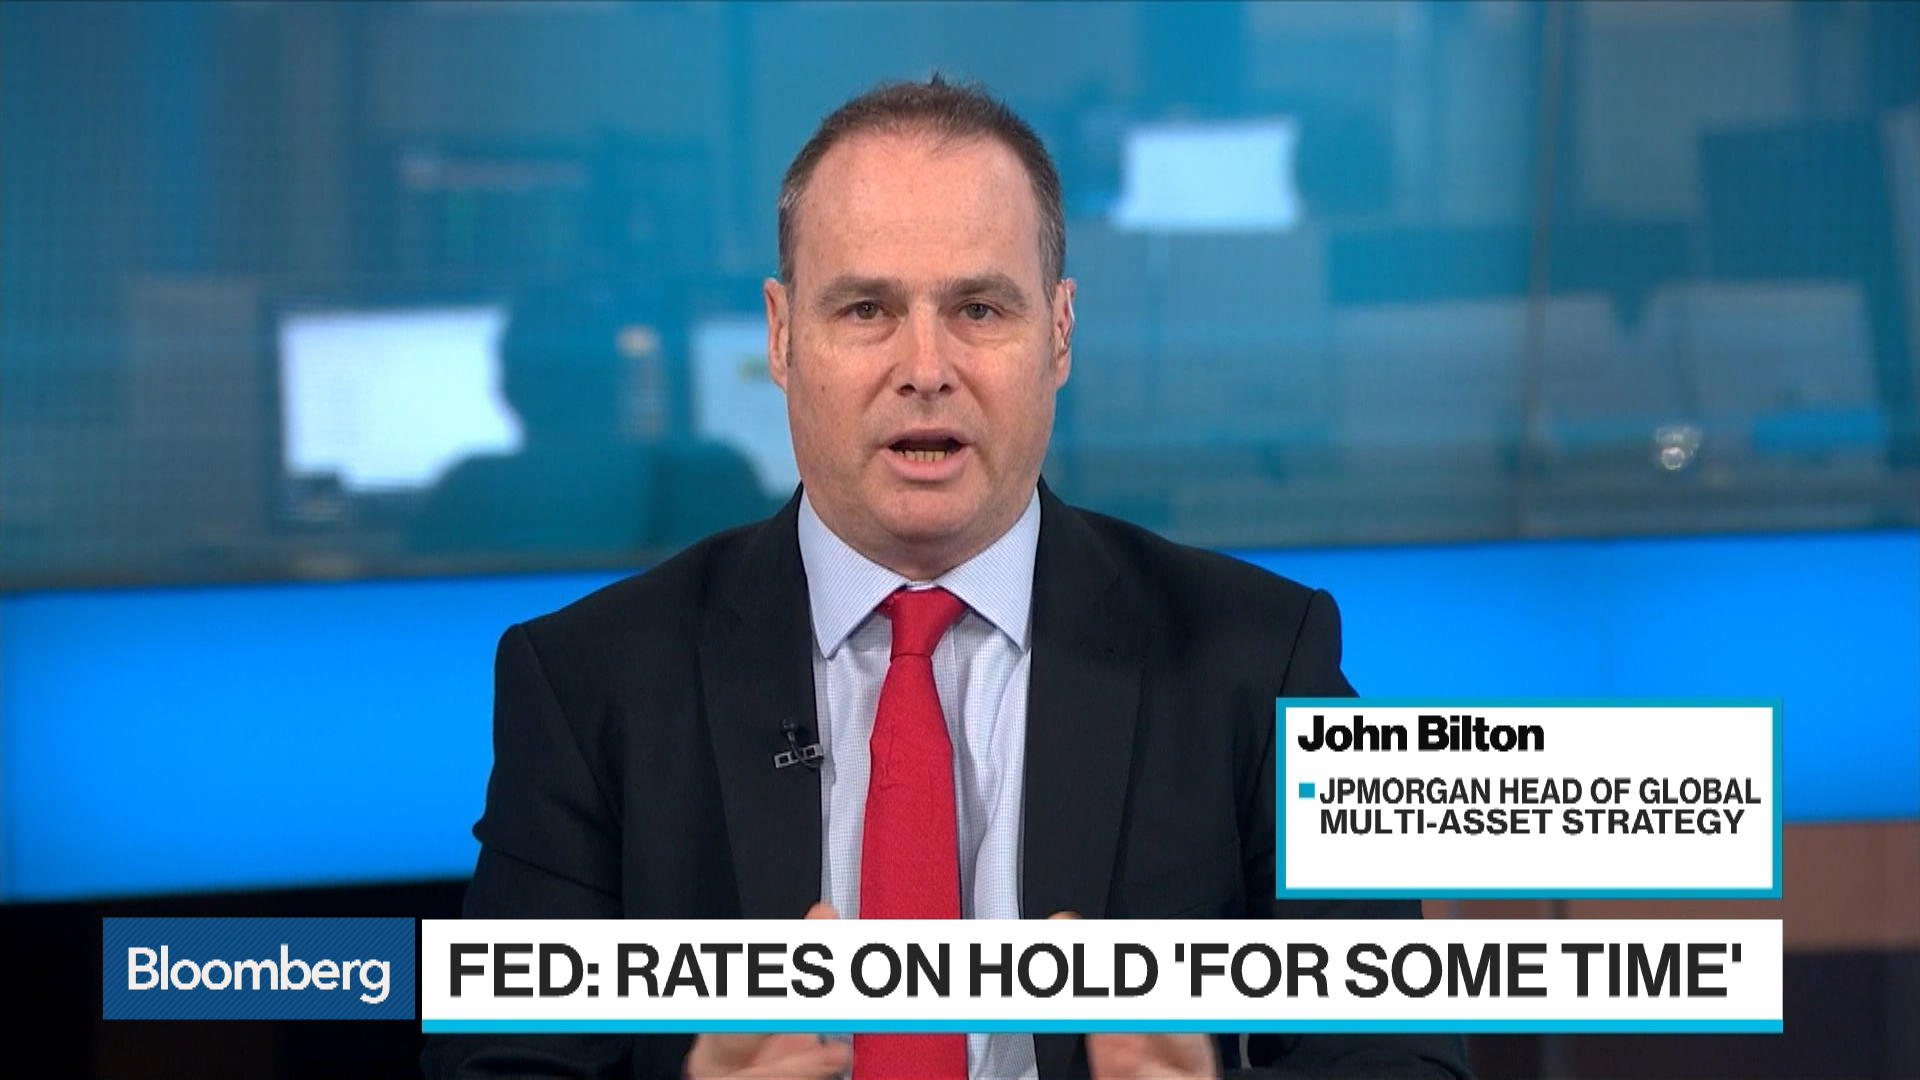 Fed's Dovish Tilt Most Felt on `Belly of the Curve': JPMorgan